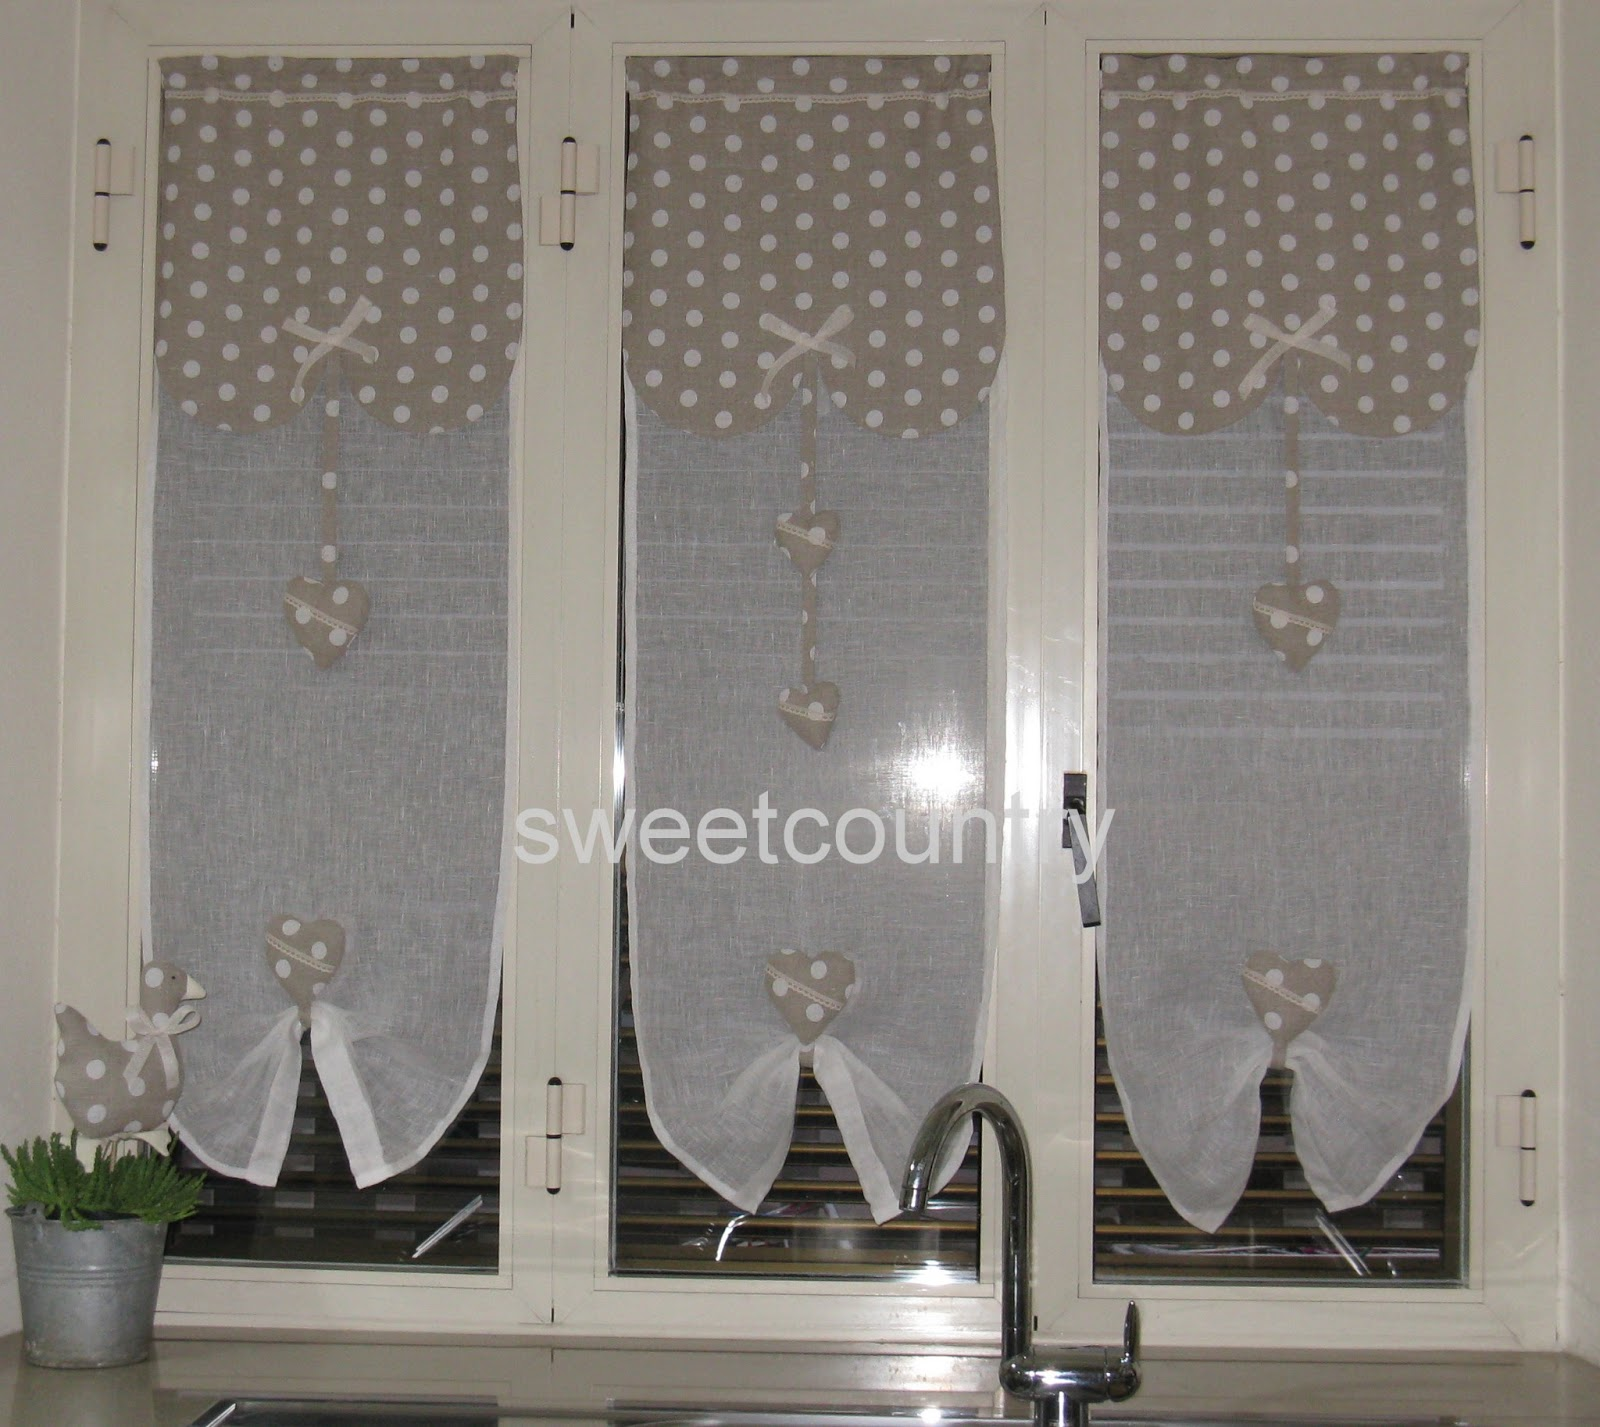 Sweetcountry tende country for Tende country cucina